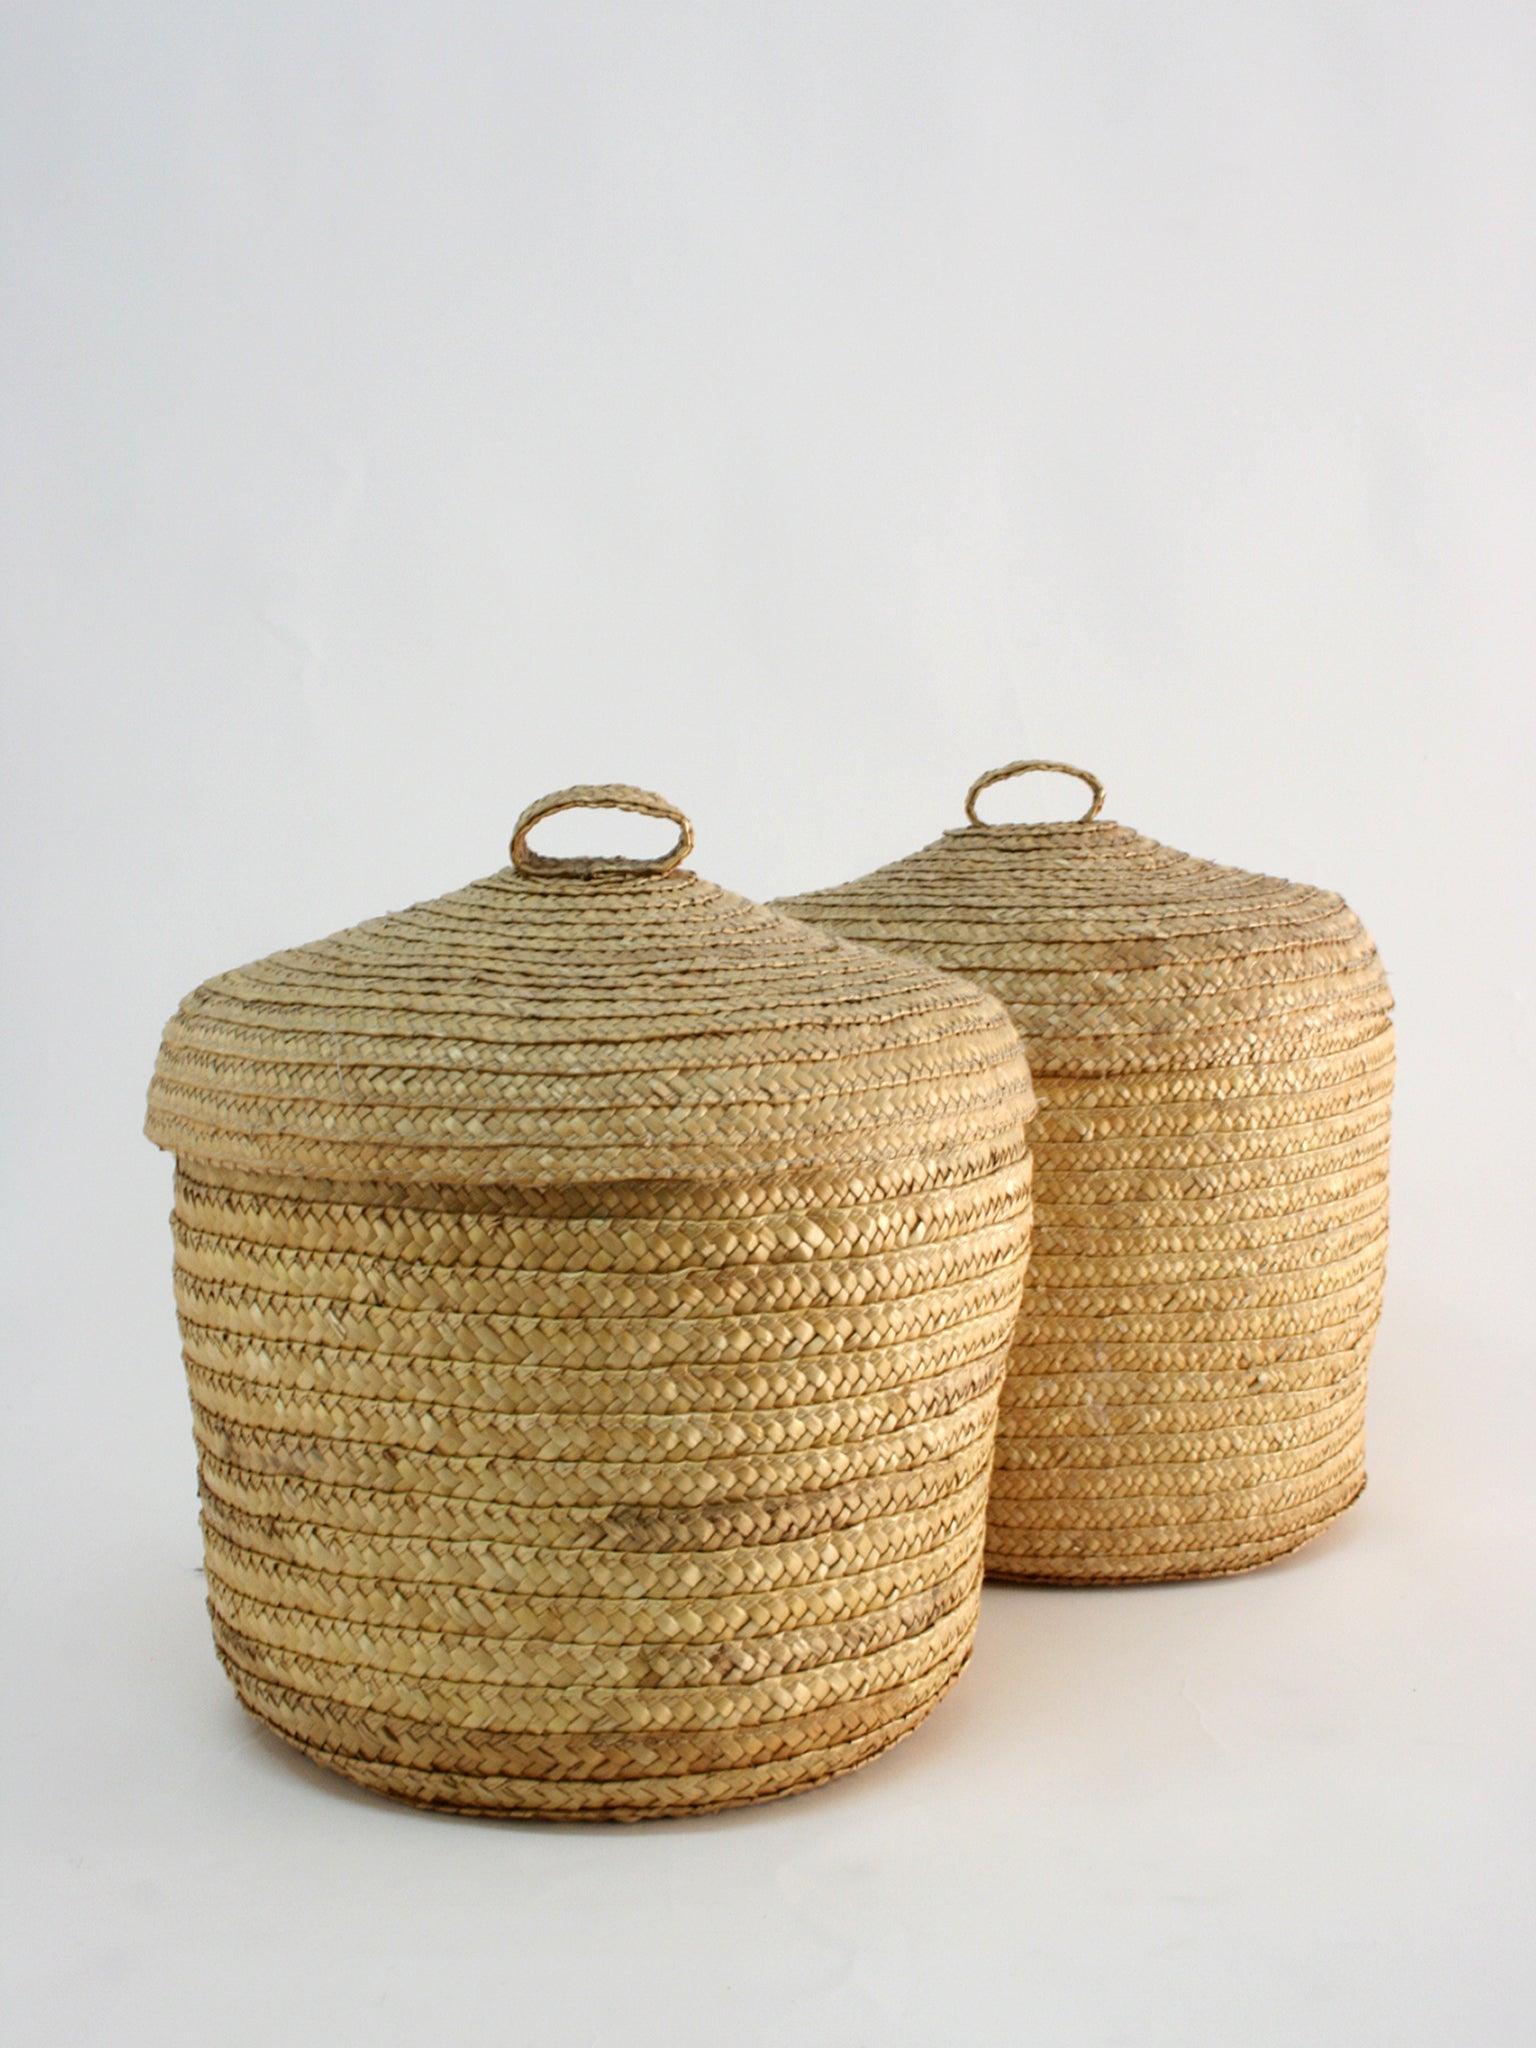 Straw basket, handcrafted